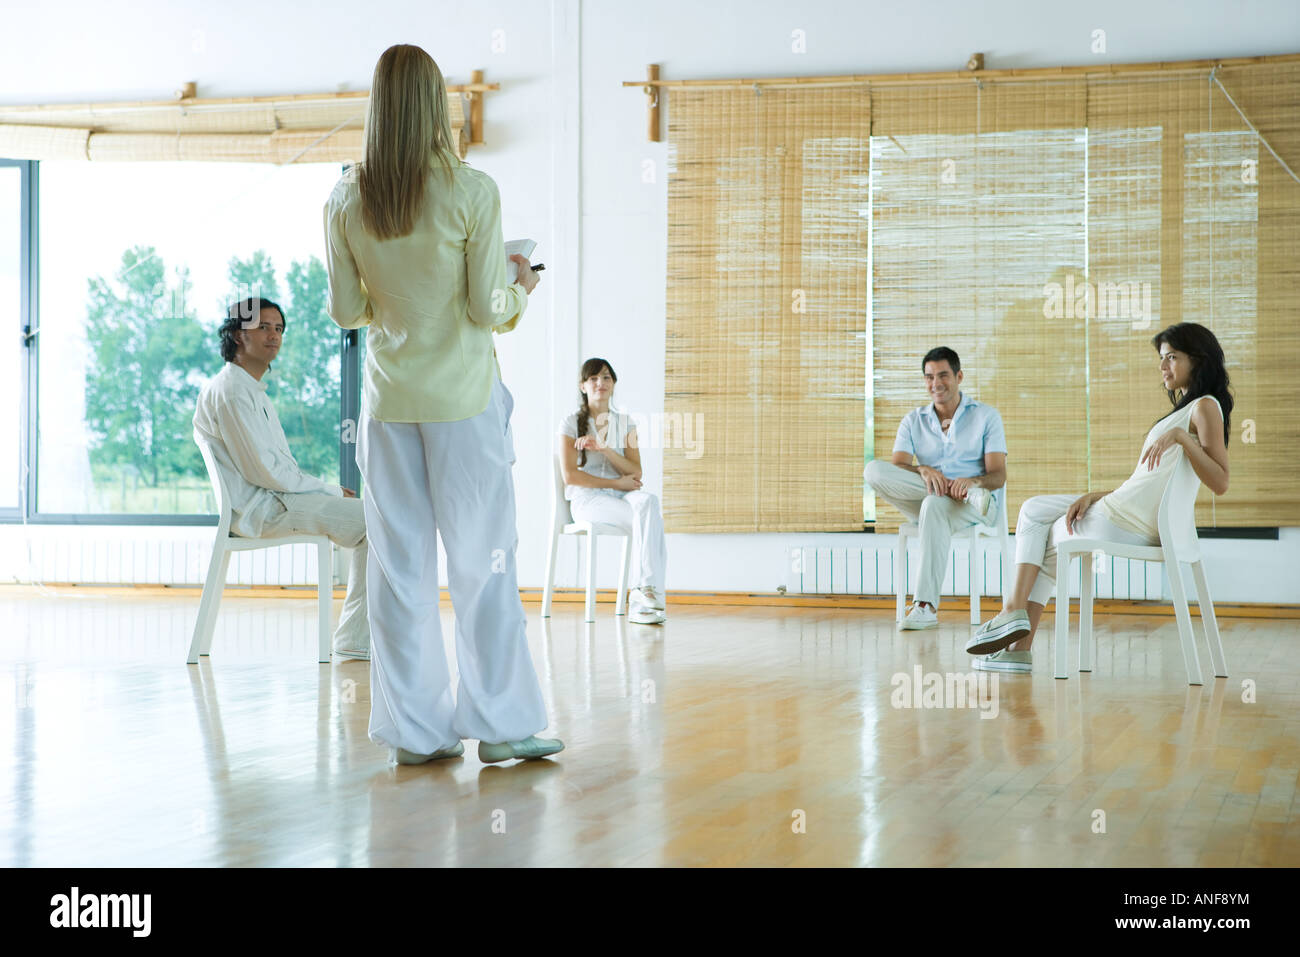 Woman leading group therapy session, rear view - Stock Image